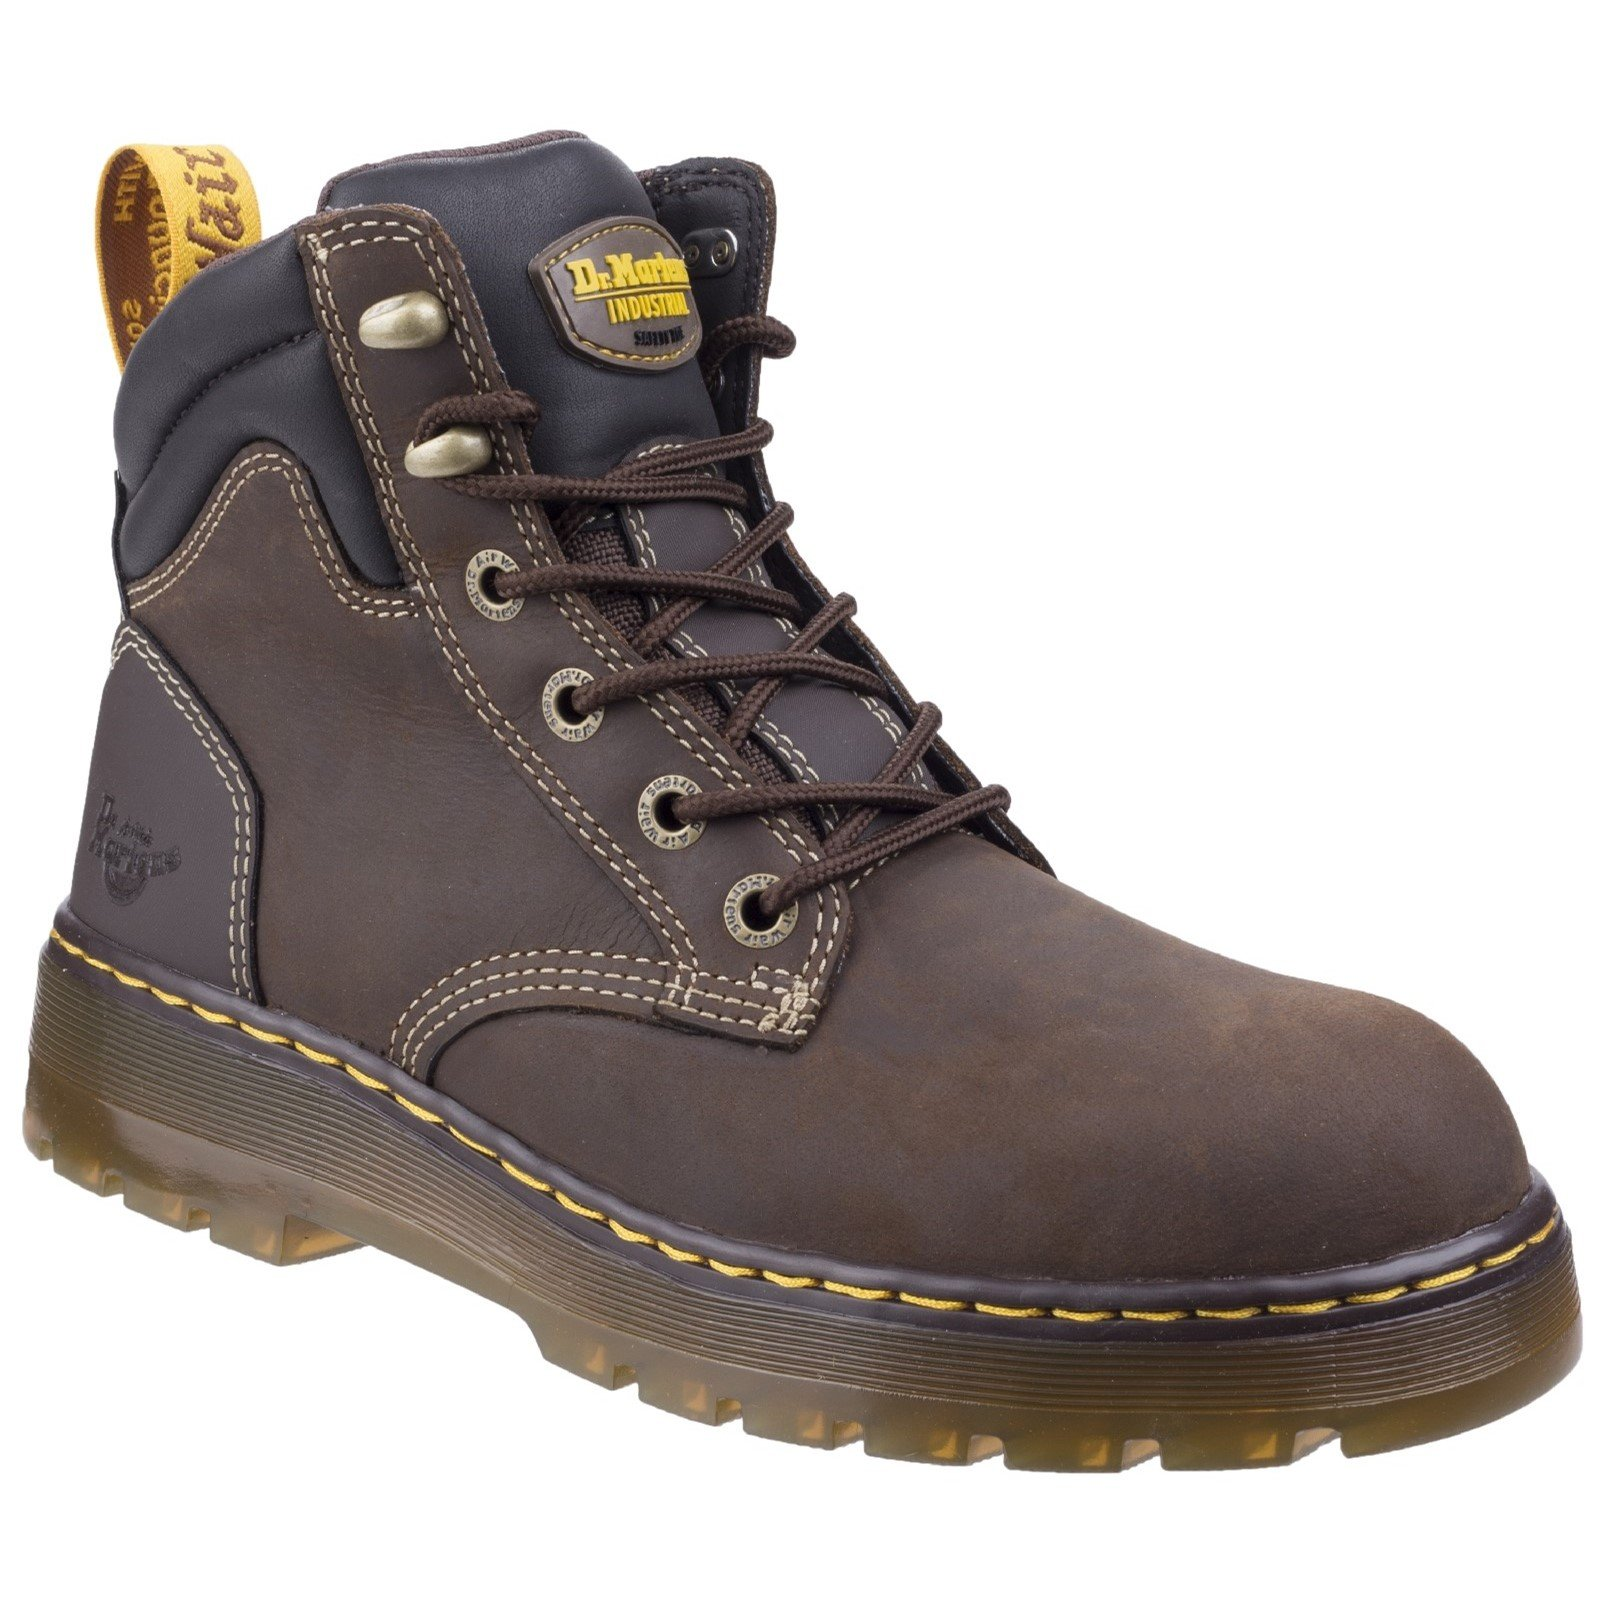 Dr Martens Unisex Brace Hiking Style Safety Boot Various Colours 27702-46606 - Dark Brown Republic 11